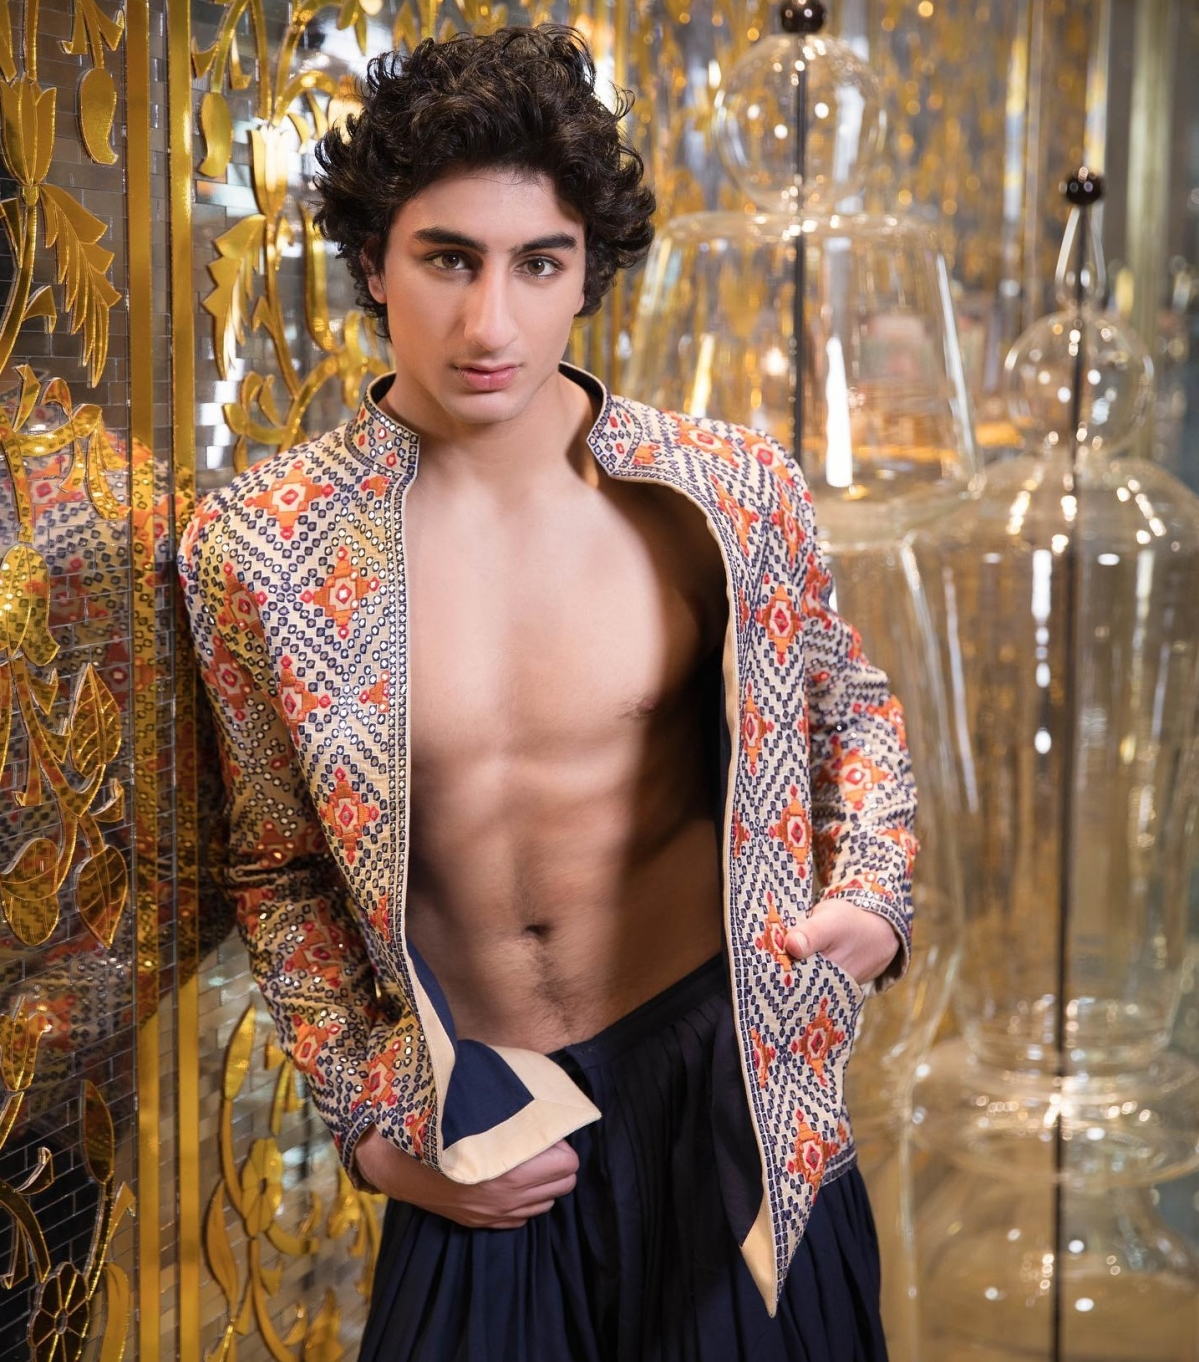 '21st Century Boy' Ibrahim Ali Khan flaunts his abs in traditional jacket - check out pic